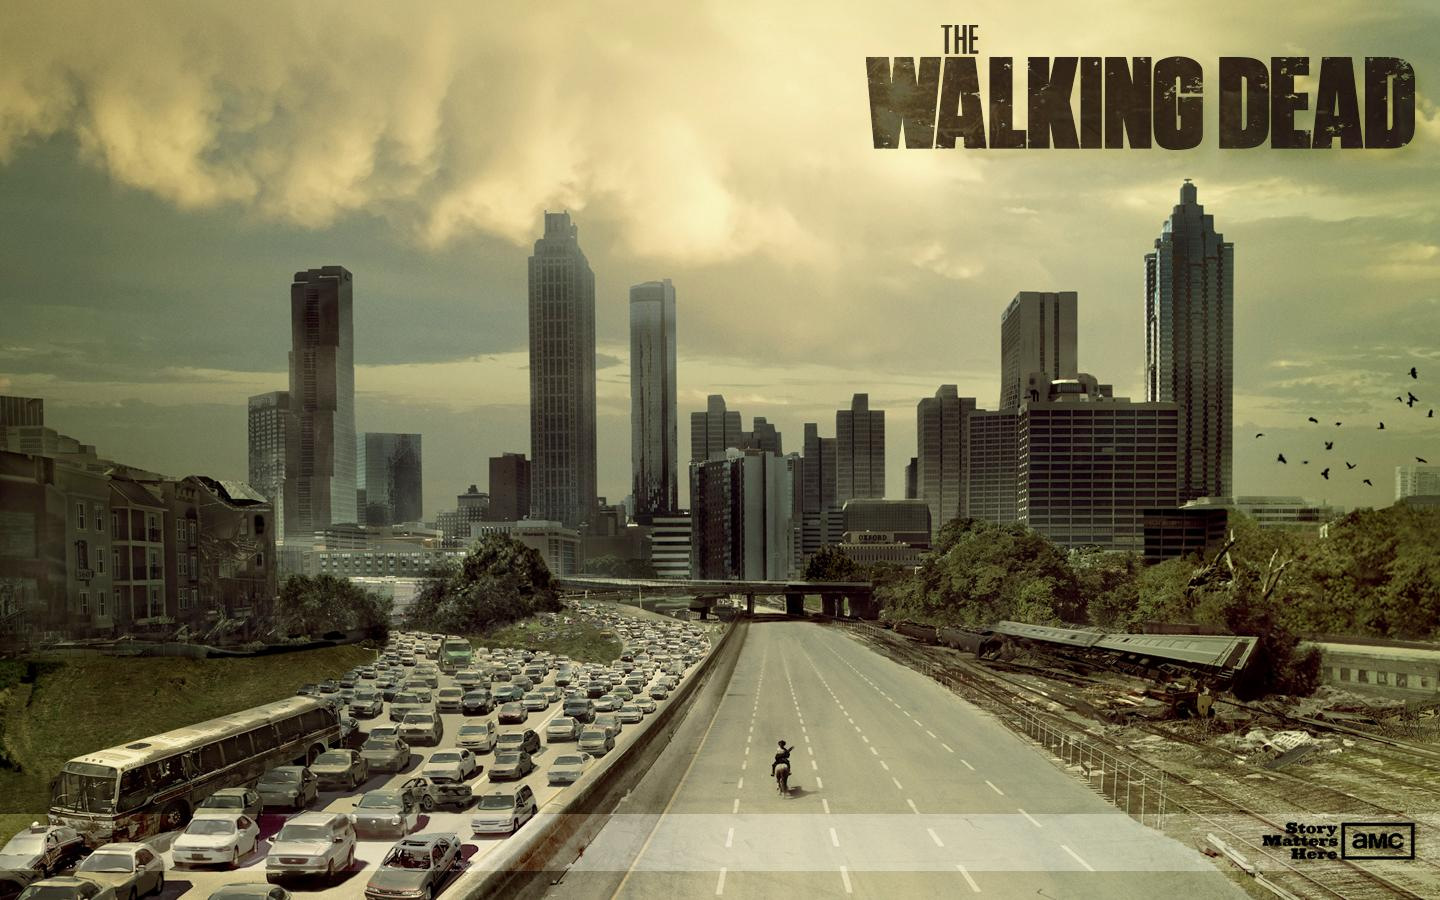 Walking Dead Season 4 8р анги